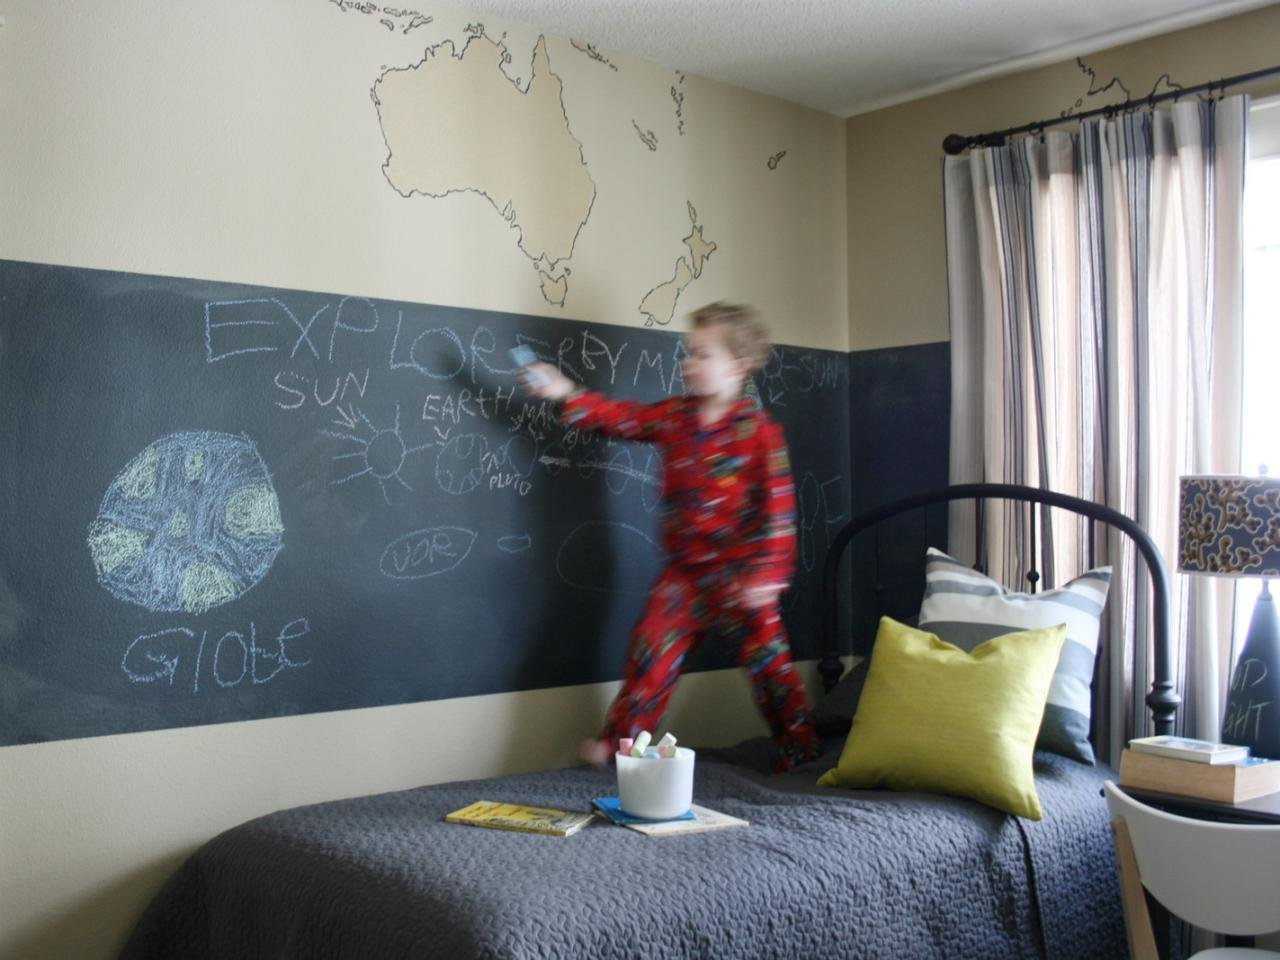 Blackboard Vinyl Sticker Chalkboard Wall Decal Contact Paper for School Home and Office 43 x 200CM